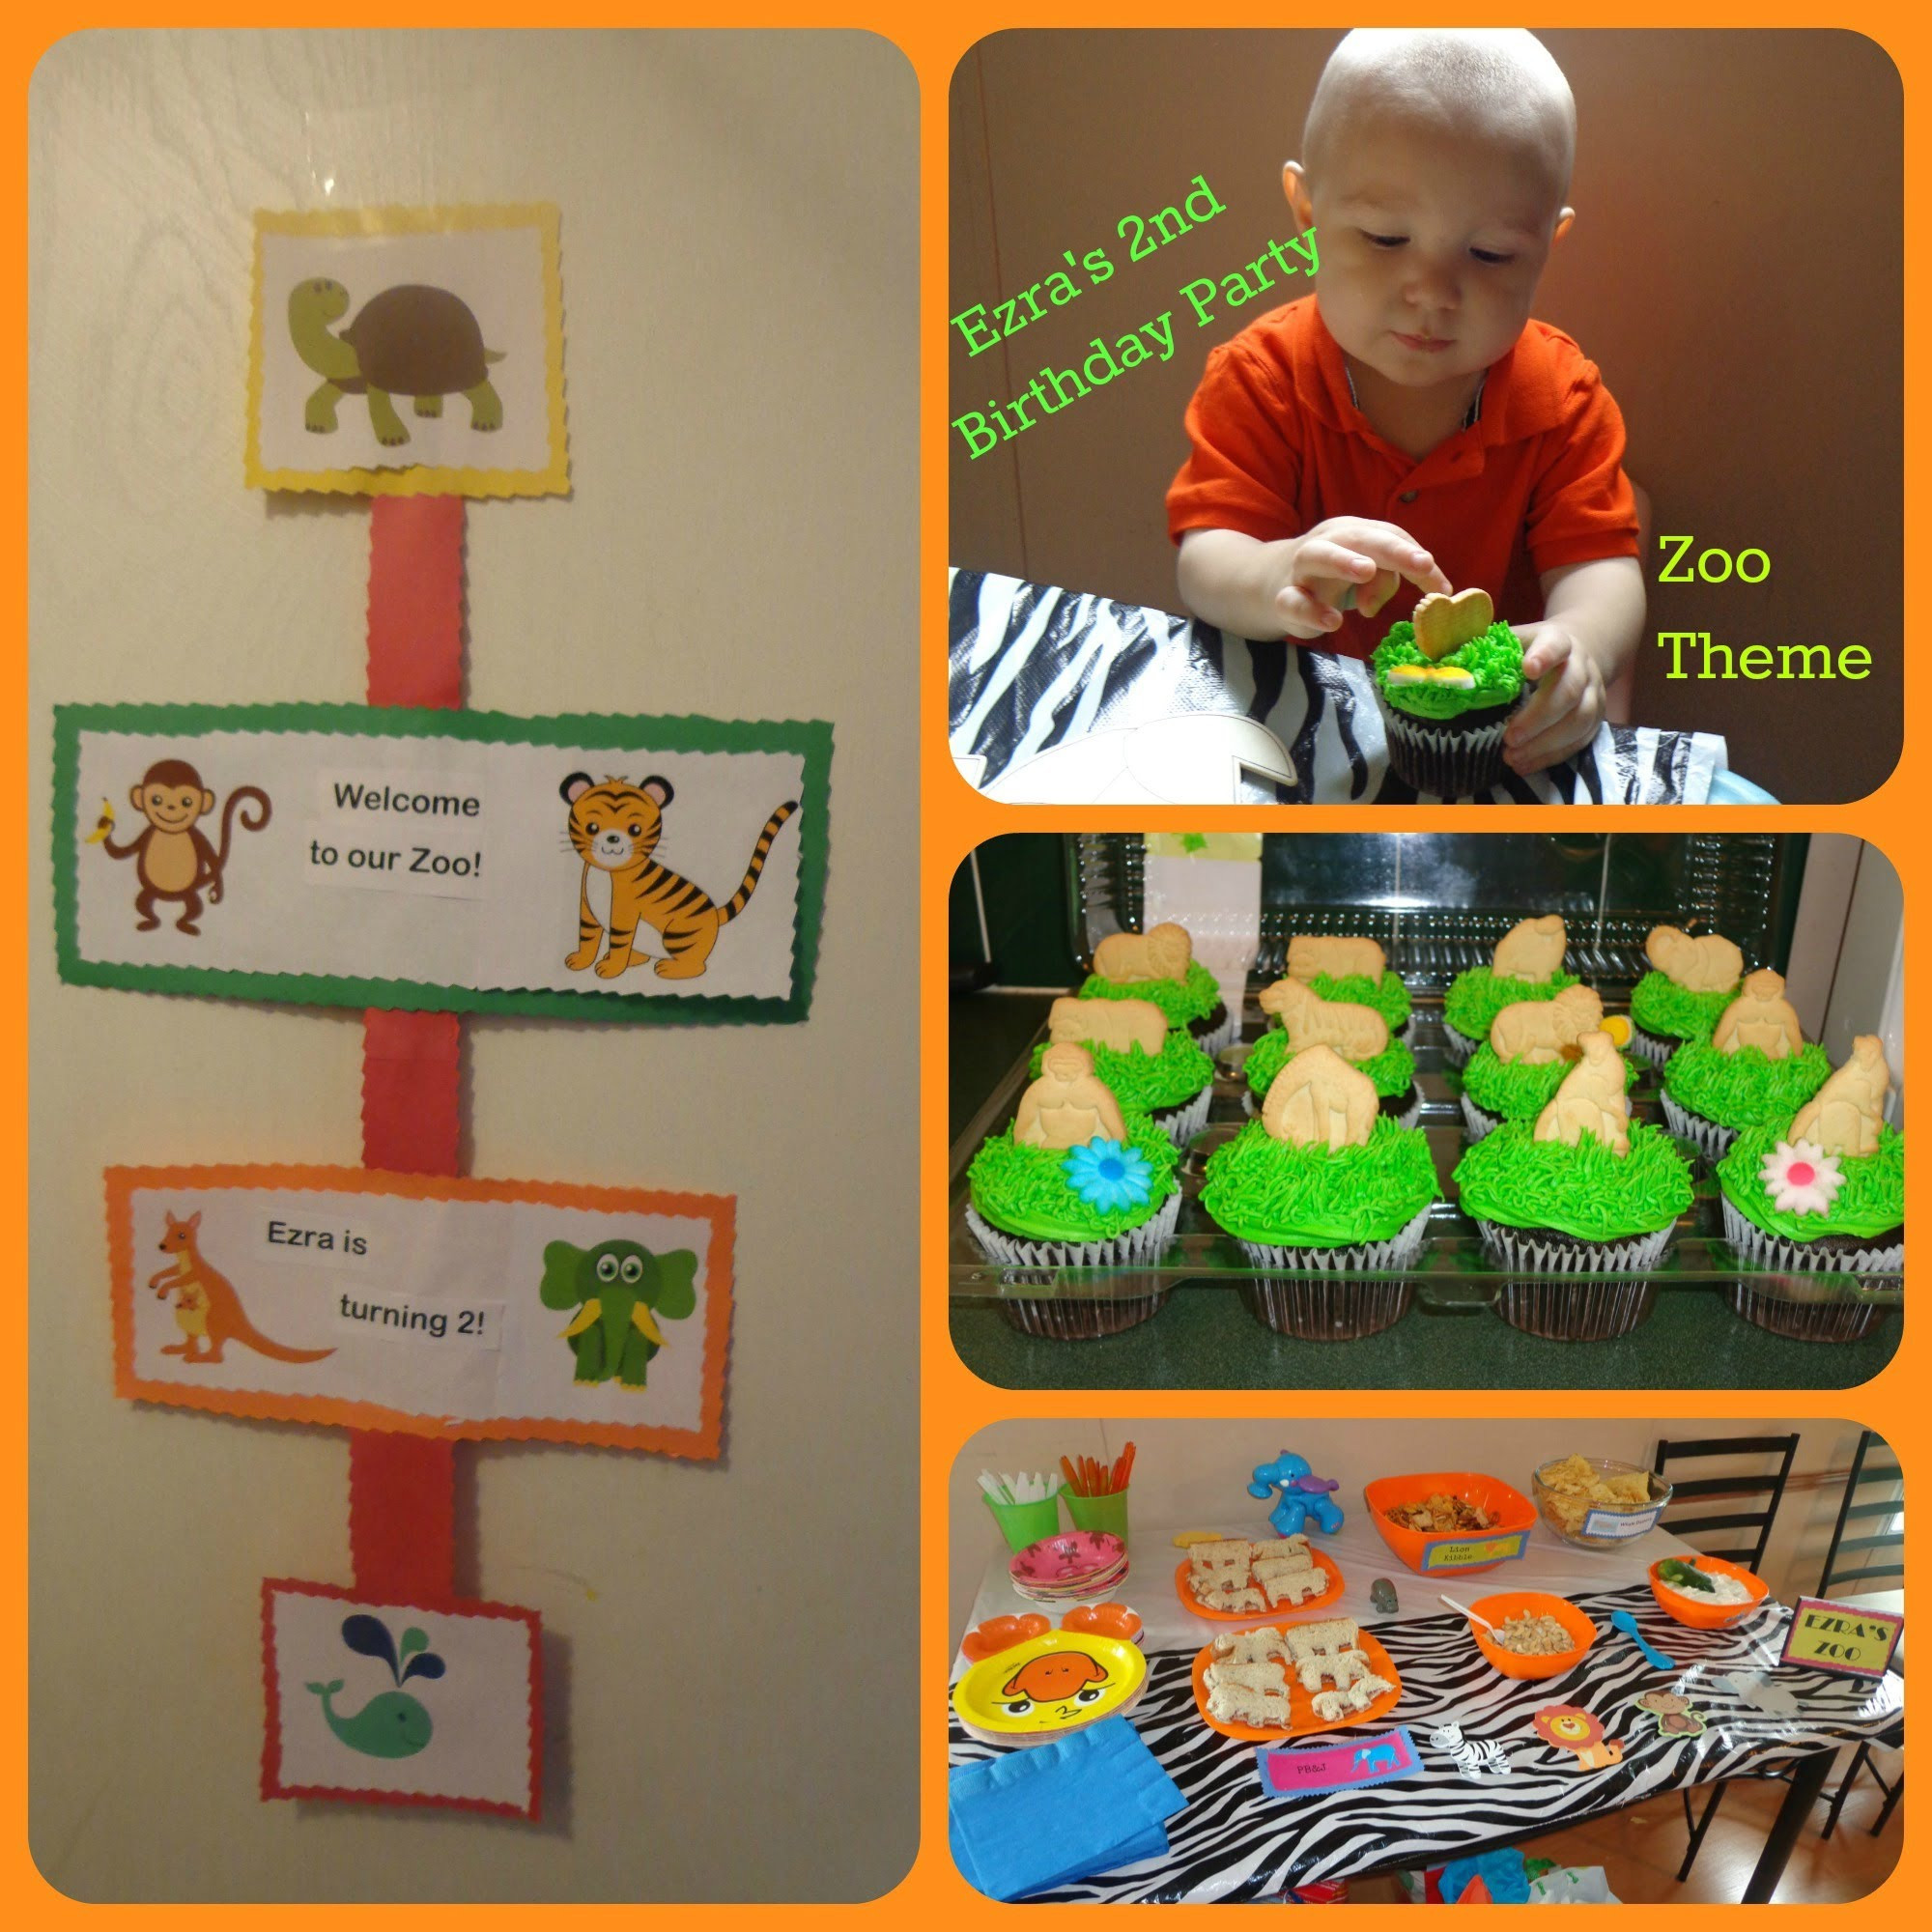 2nd birthday party games ; basketball-themed-birthday-party-fresh-themes-birthday-zoo-themed-birthday-party-activities-plus-zoo-of-basketball-themed-birthday-party